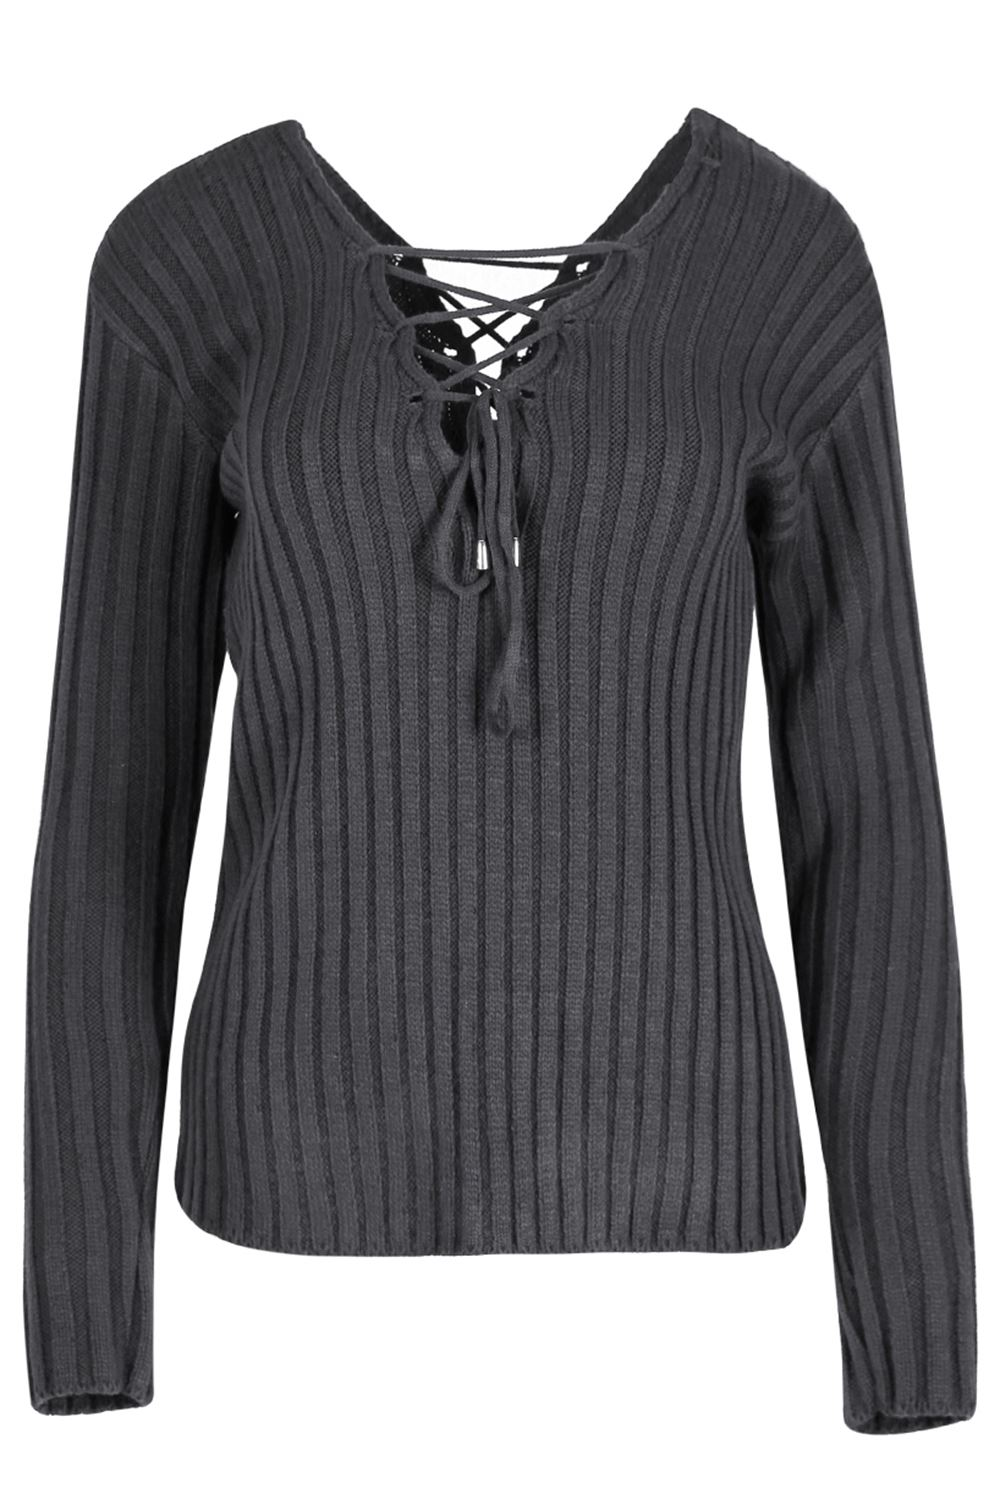 77a512be7a Womens Ladies Jumper V Neck Long Sleeve Front Back Eyelet Lace Up ...